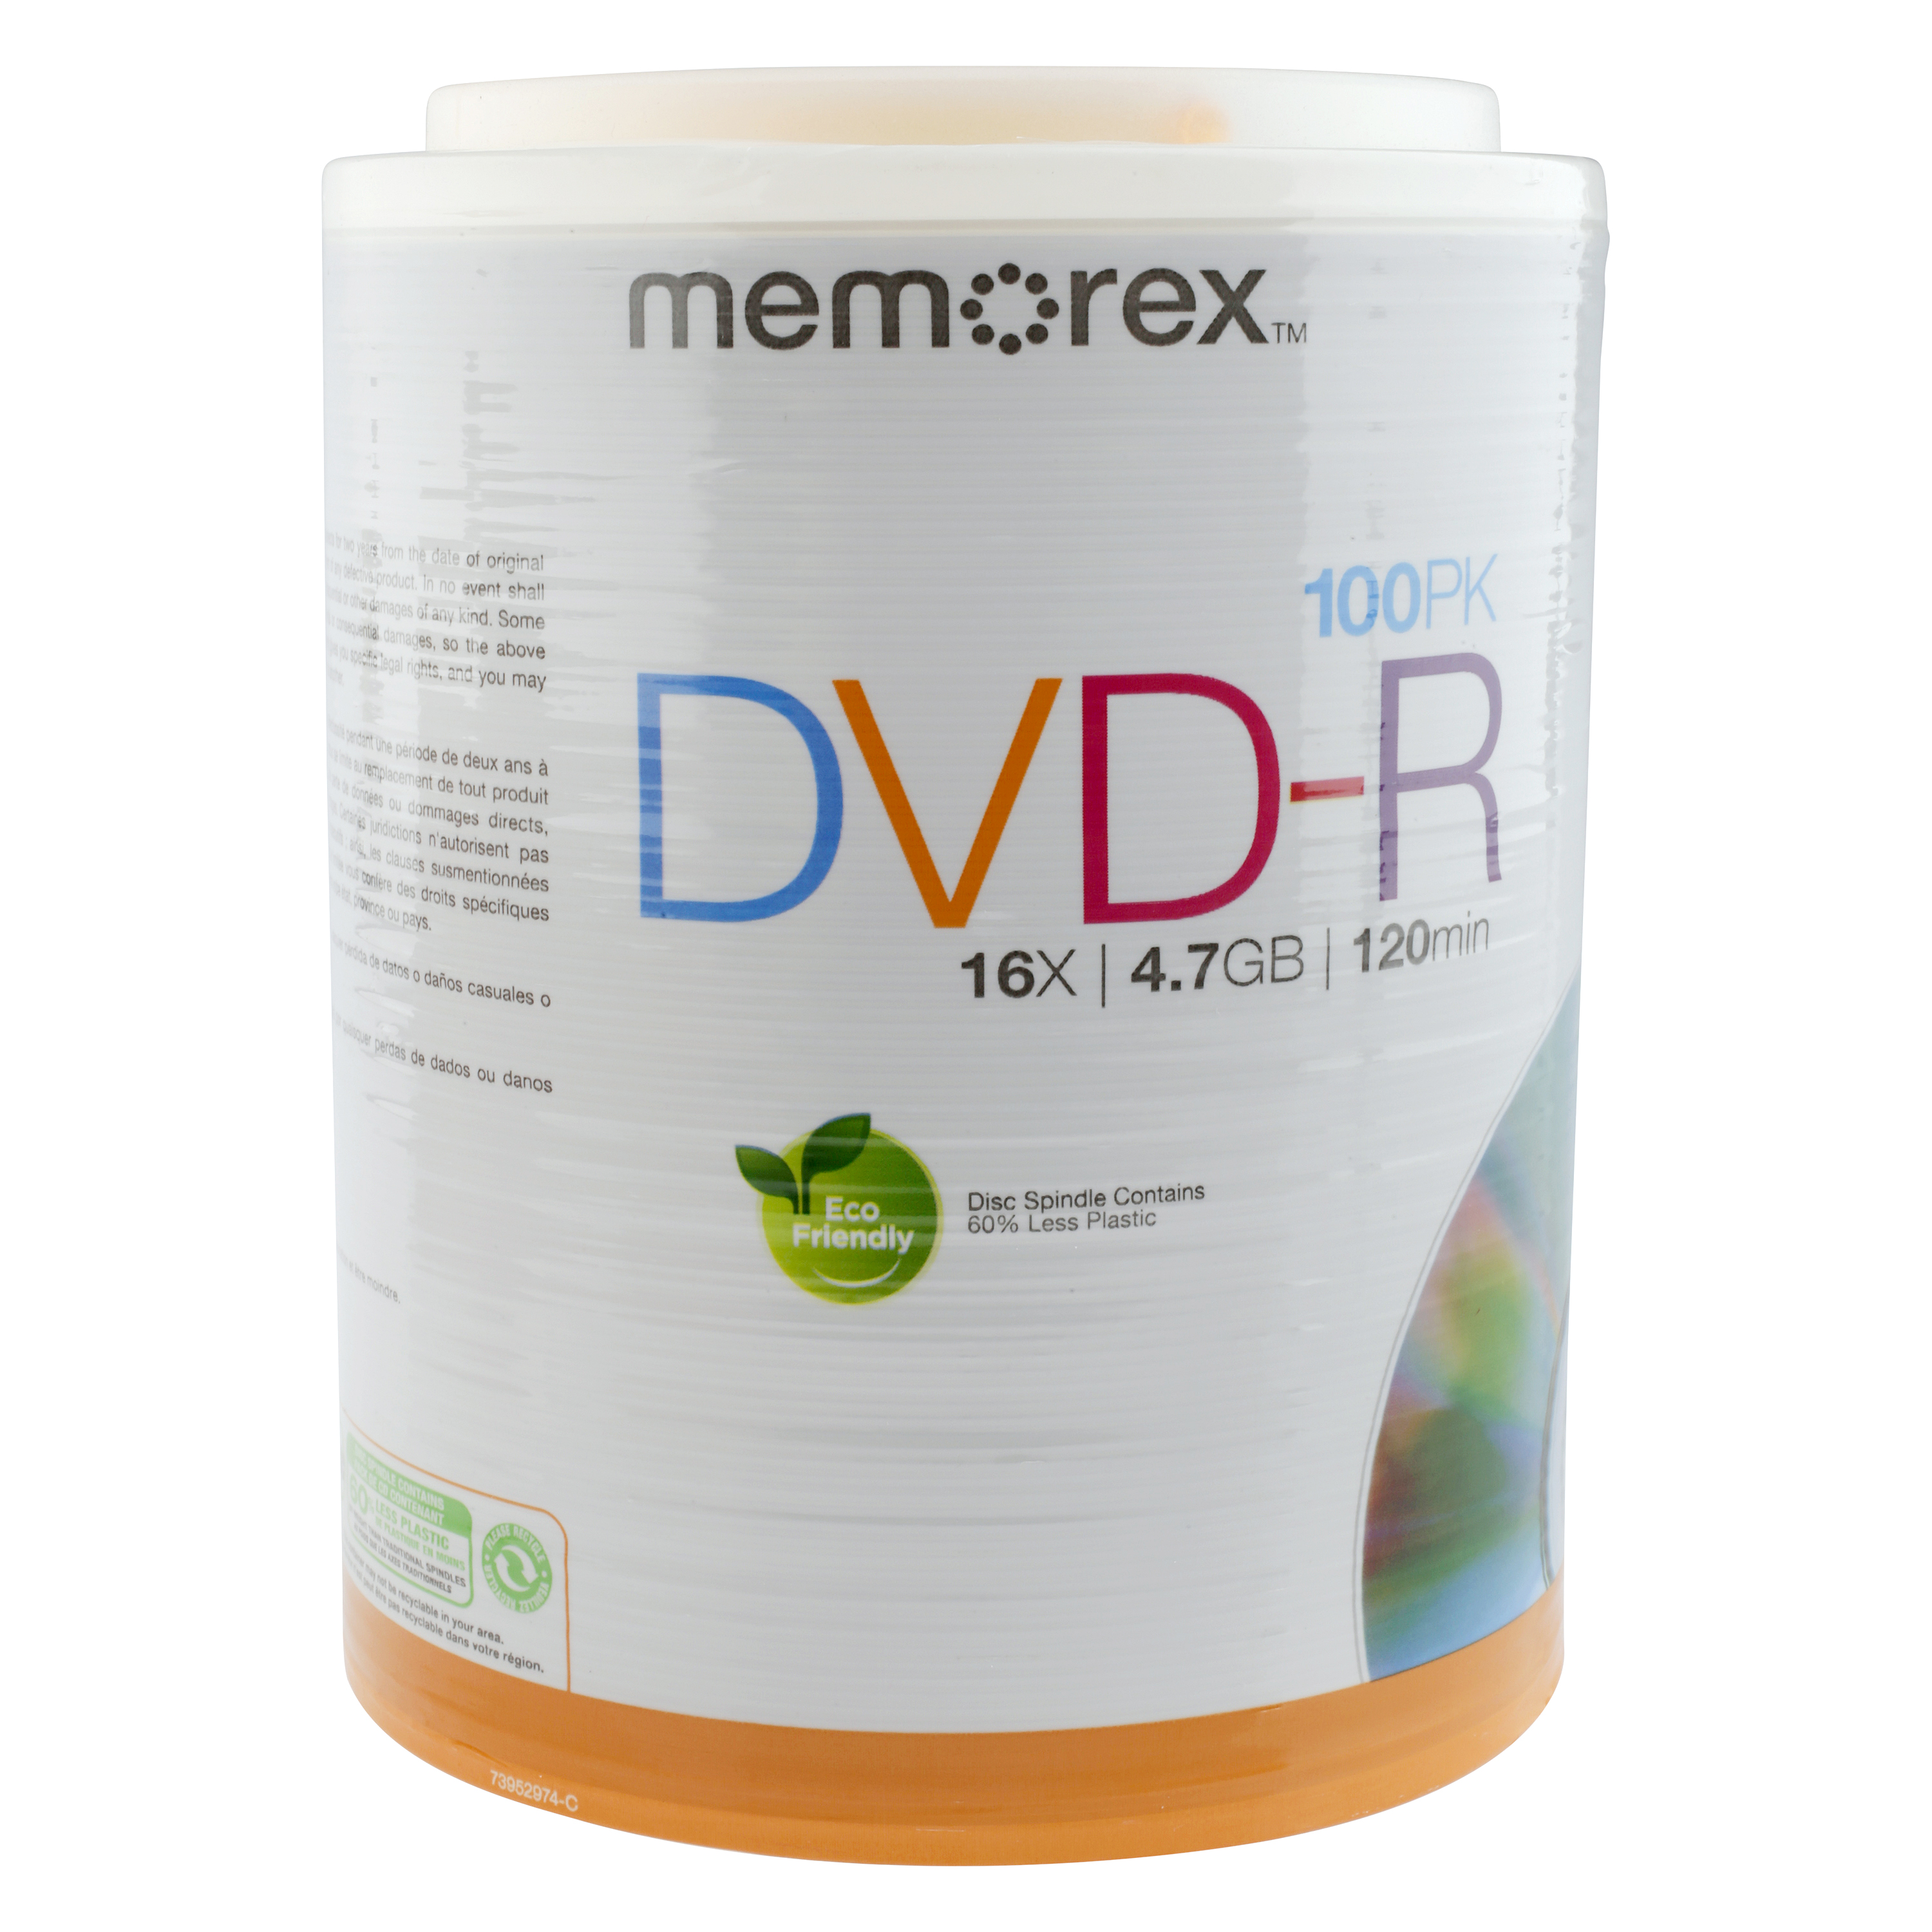 Memorex 100 Pack DVD R Writeable 16X